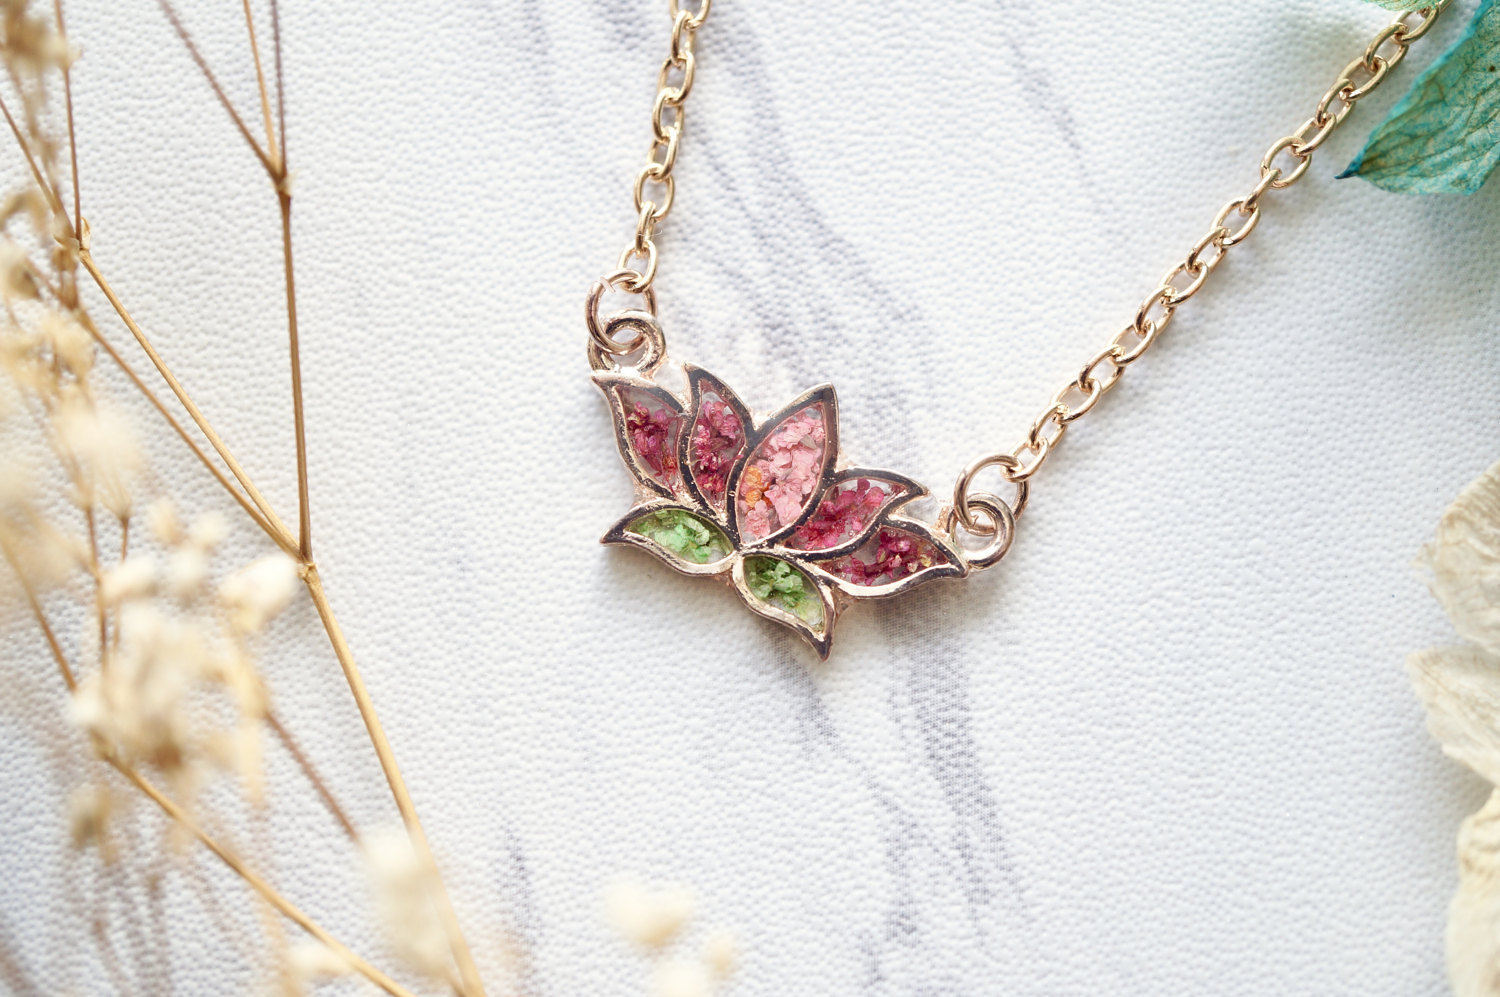 Real Pressed Flowers and Resin Necklace Rose Gold Lotus Flower in Pink and Green